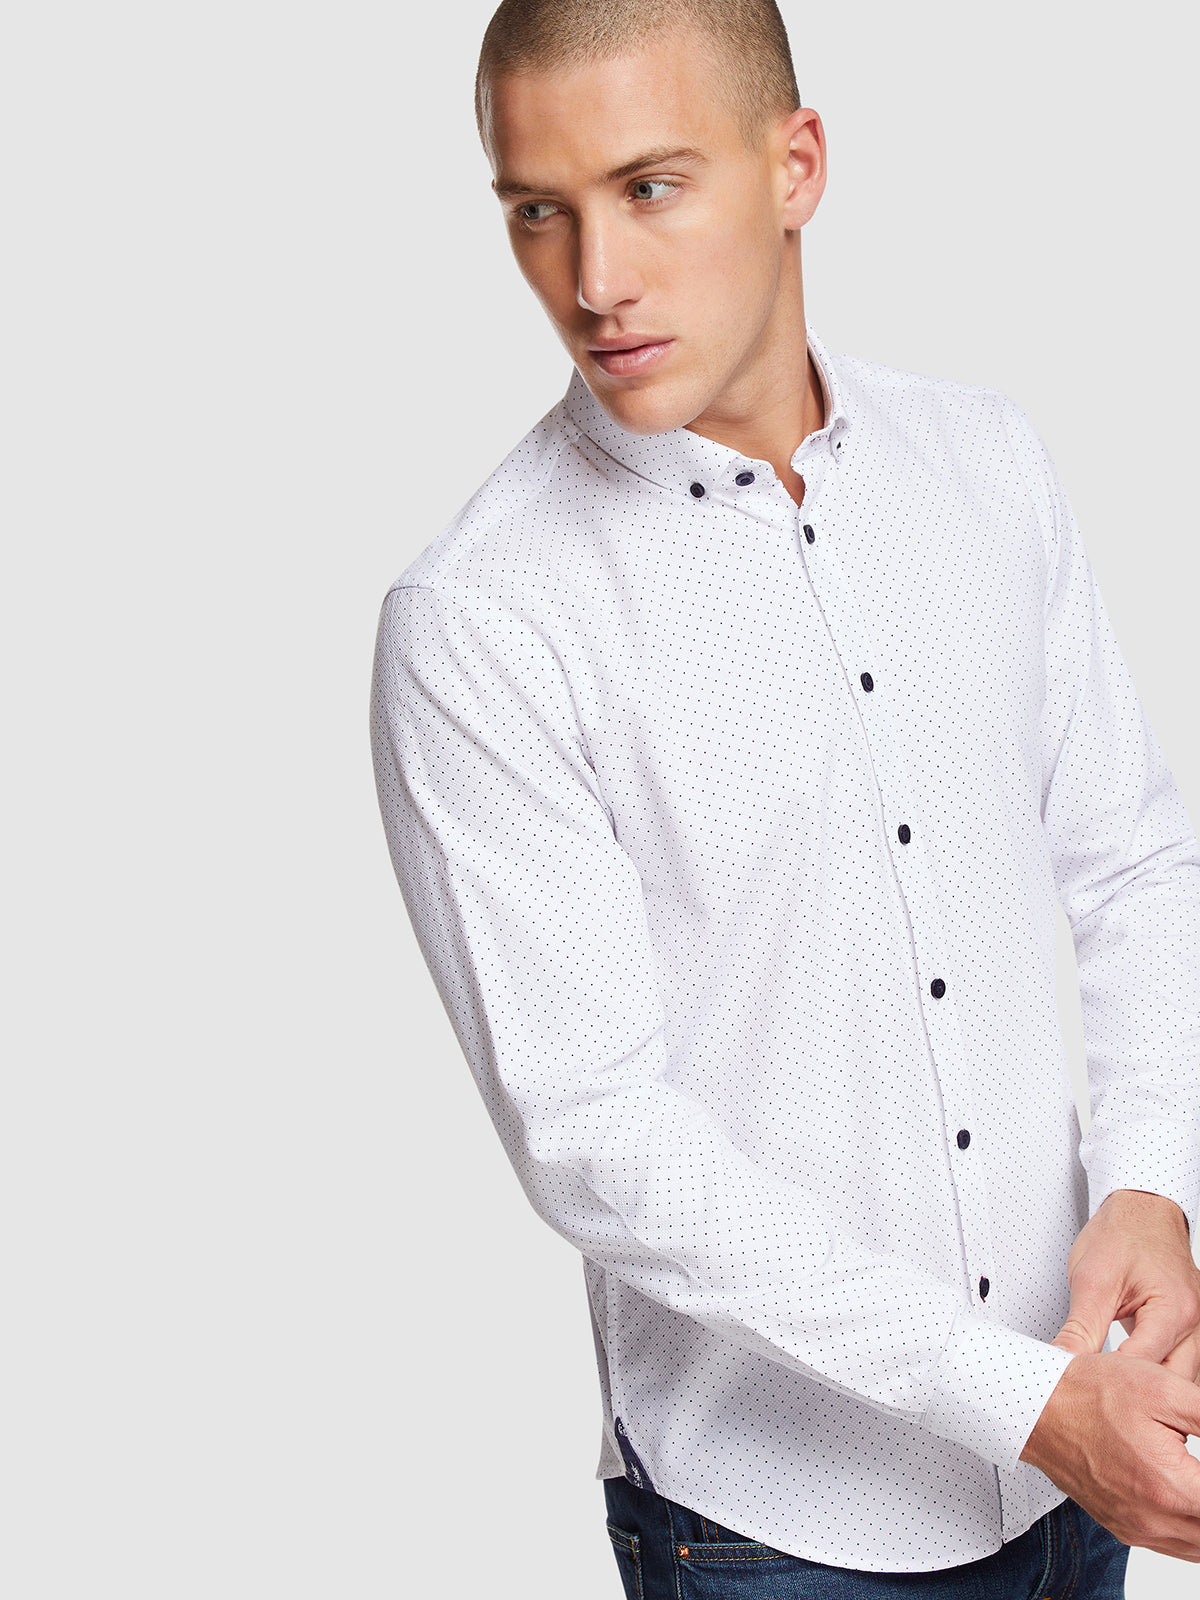 STRATTON SPOT PRINTED SHIRT WHITE/NAVY